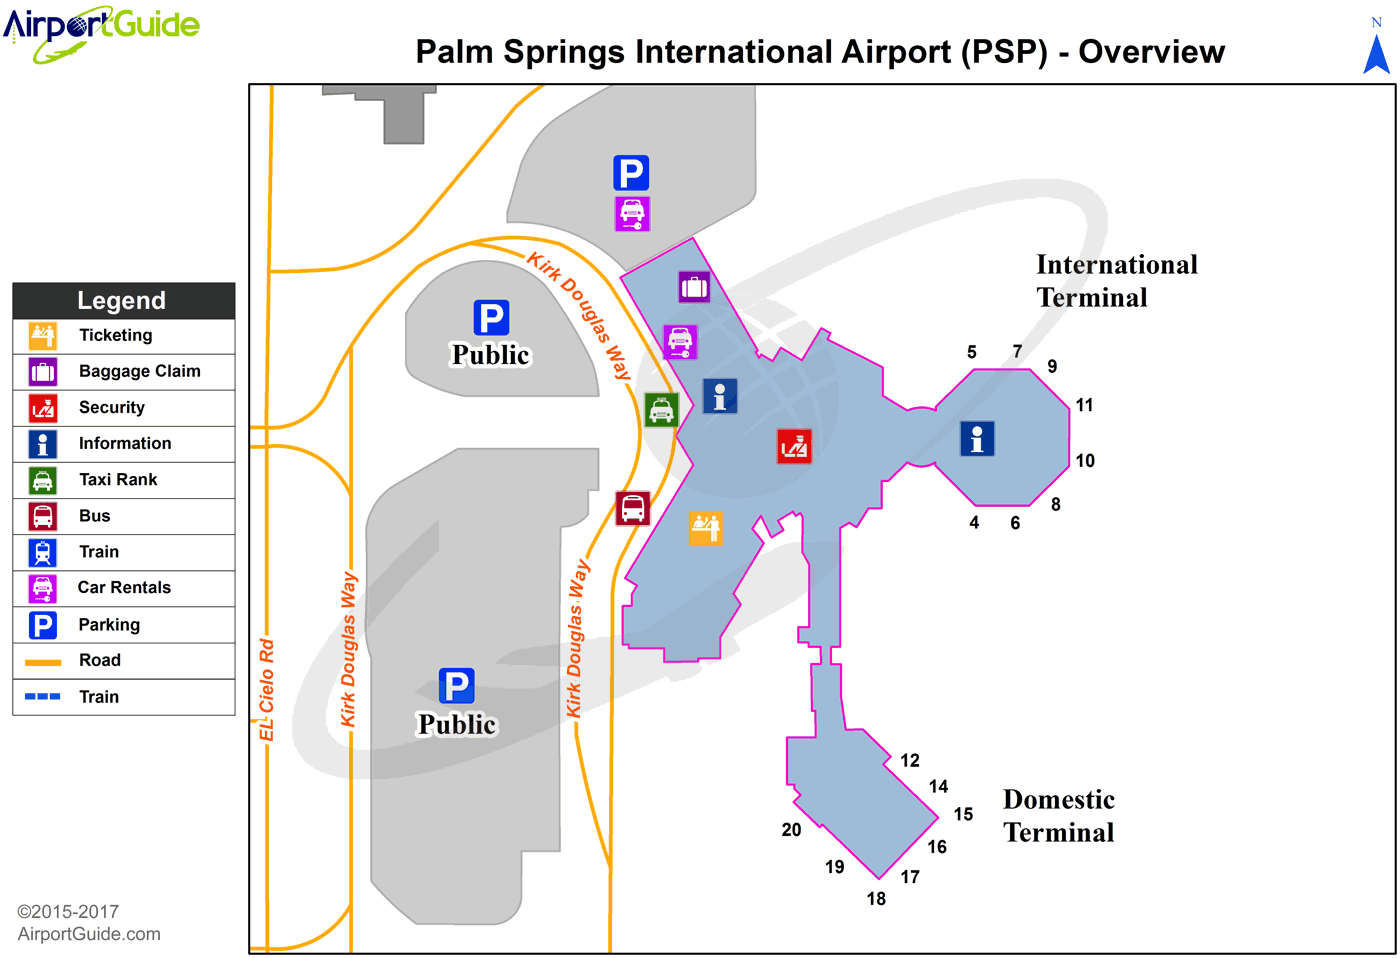 palm springs airport map Palm Springs Palm Springs International Psp Airport Terminal Map Overview Airport Guide Airport Palm Springs International Airport palm springs airport map